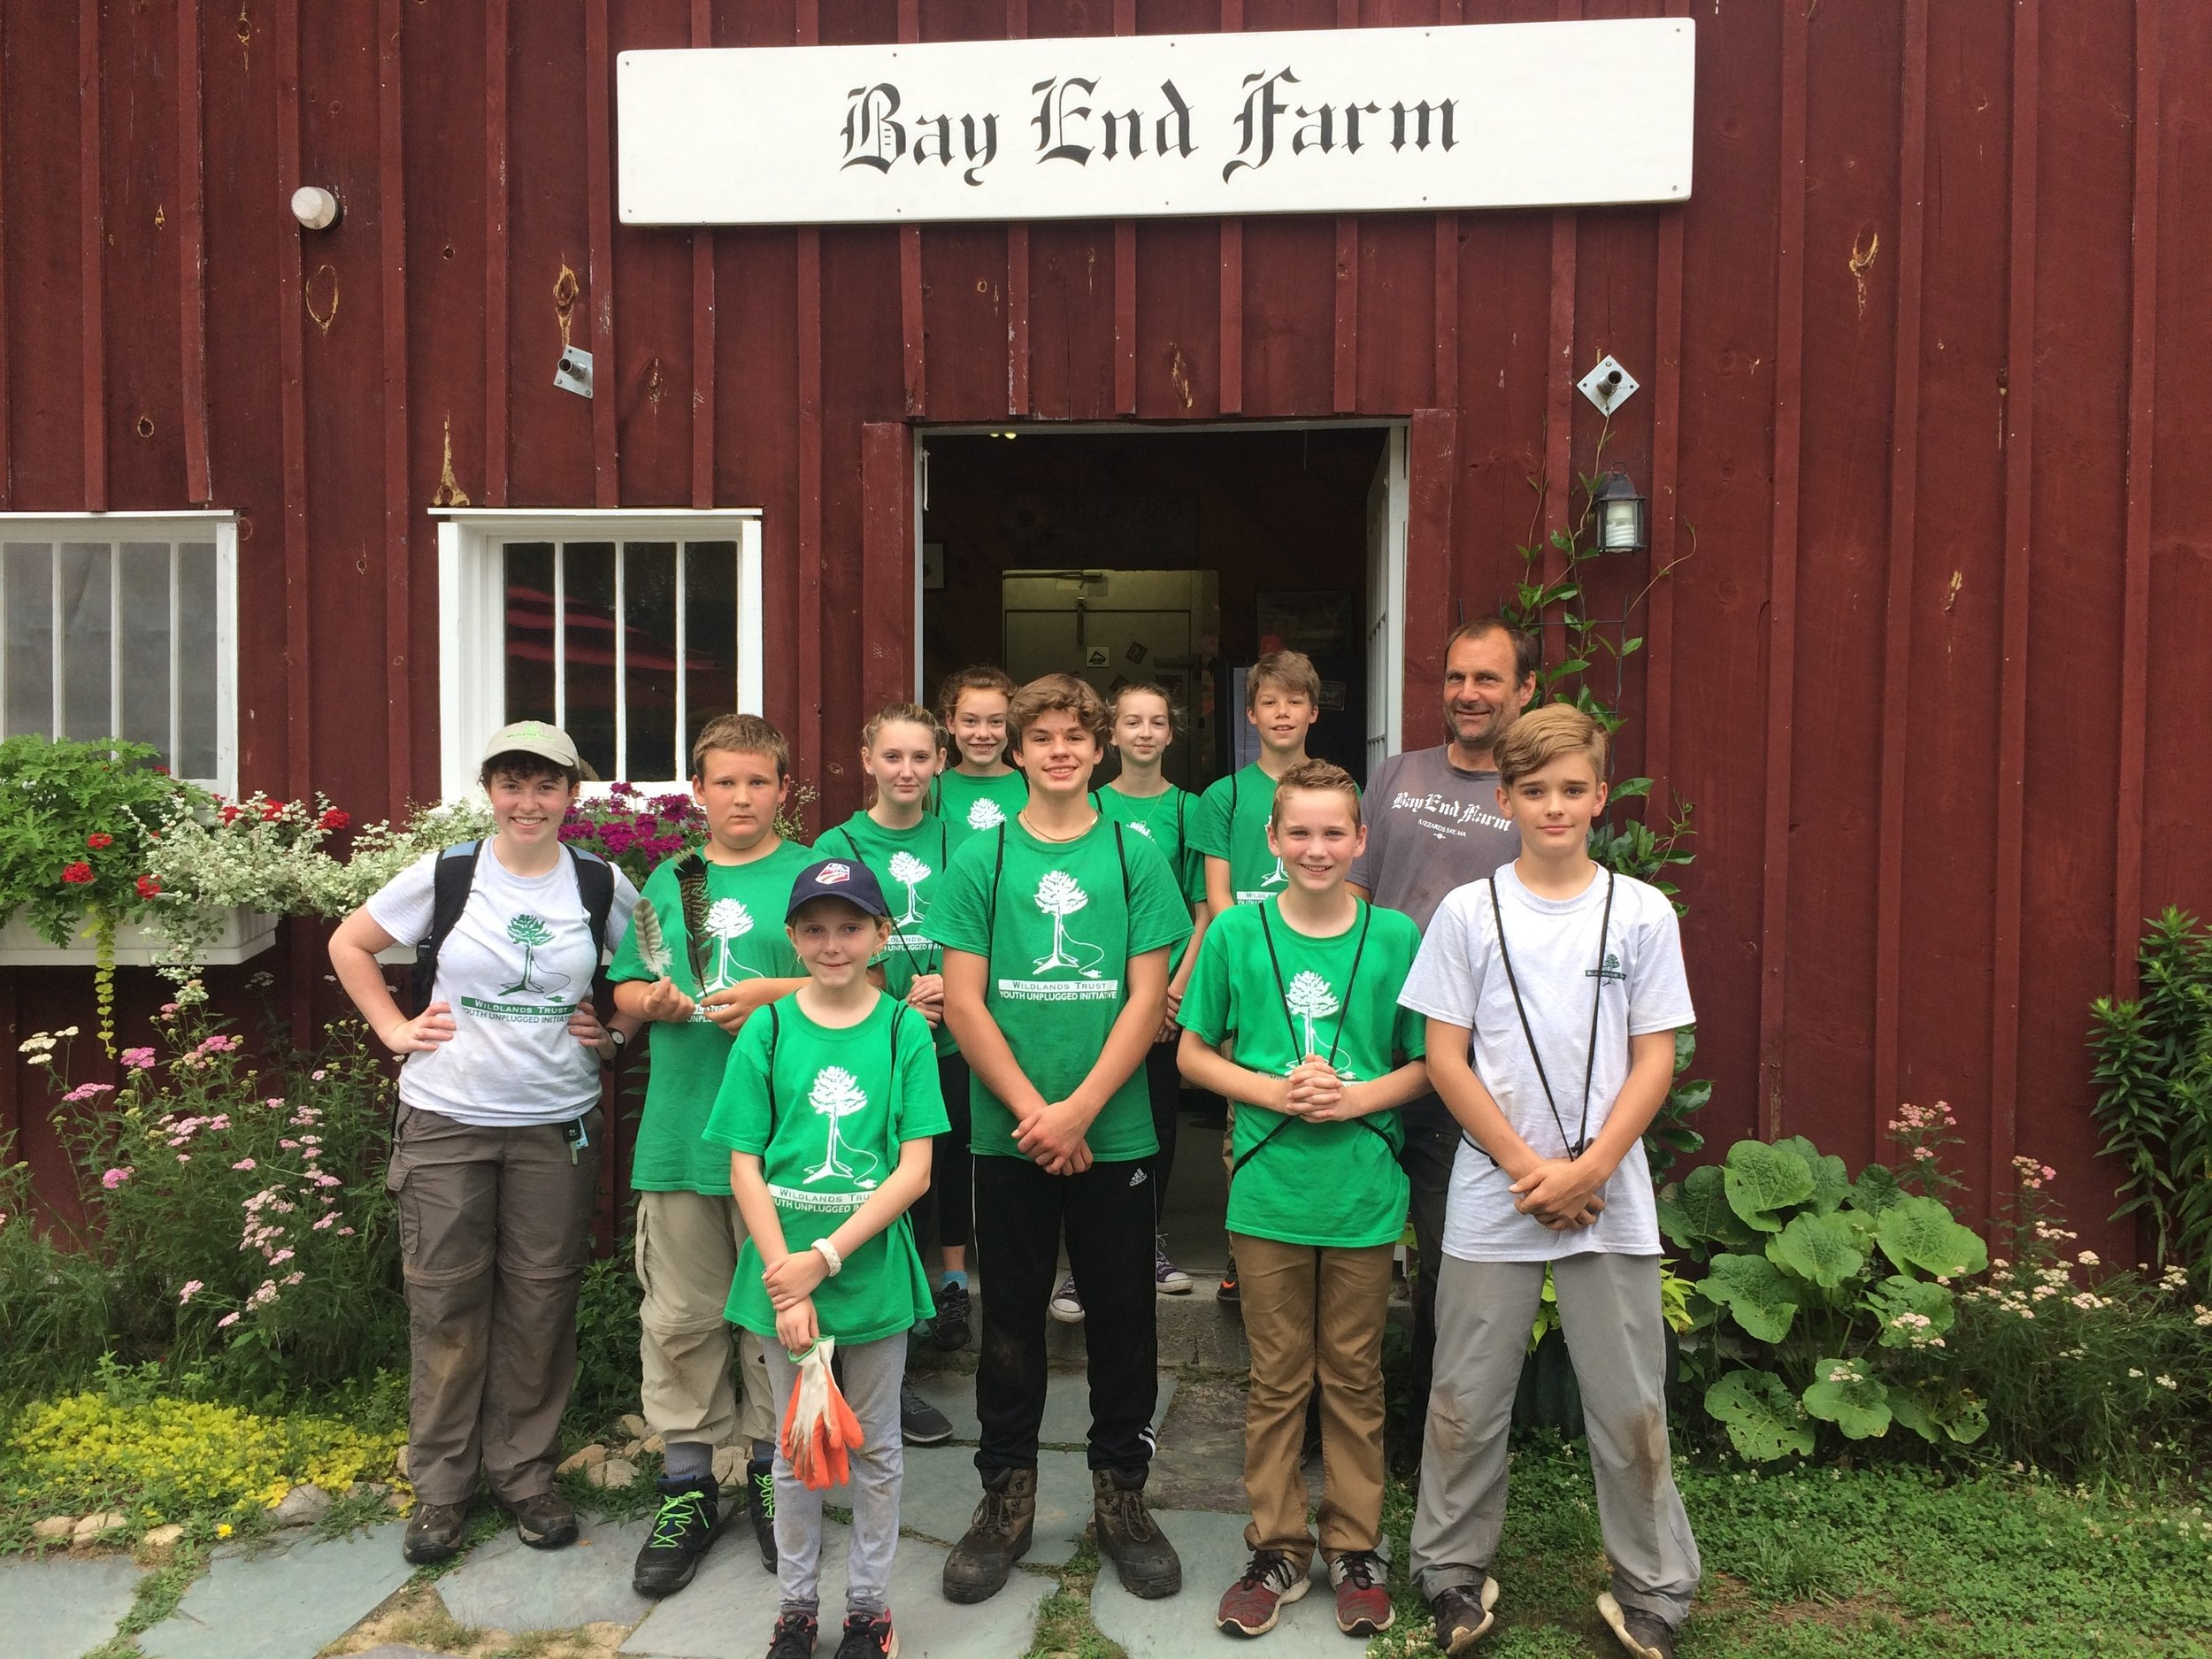 The 2017 Green Team middle school age group volunteers at Bay Farm in Bourne